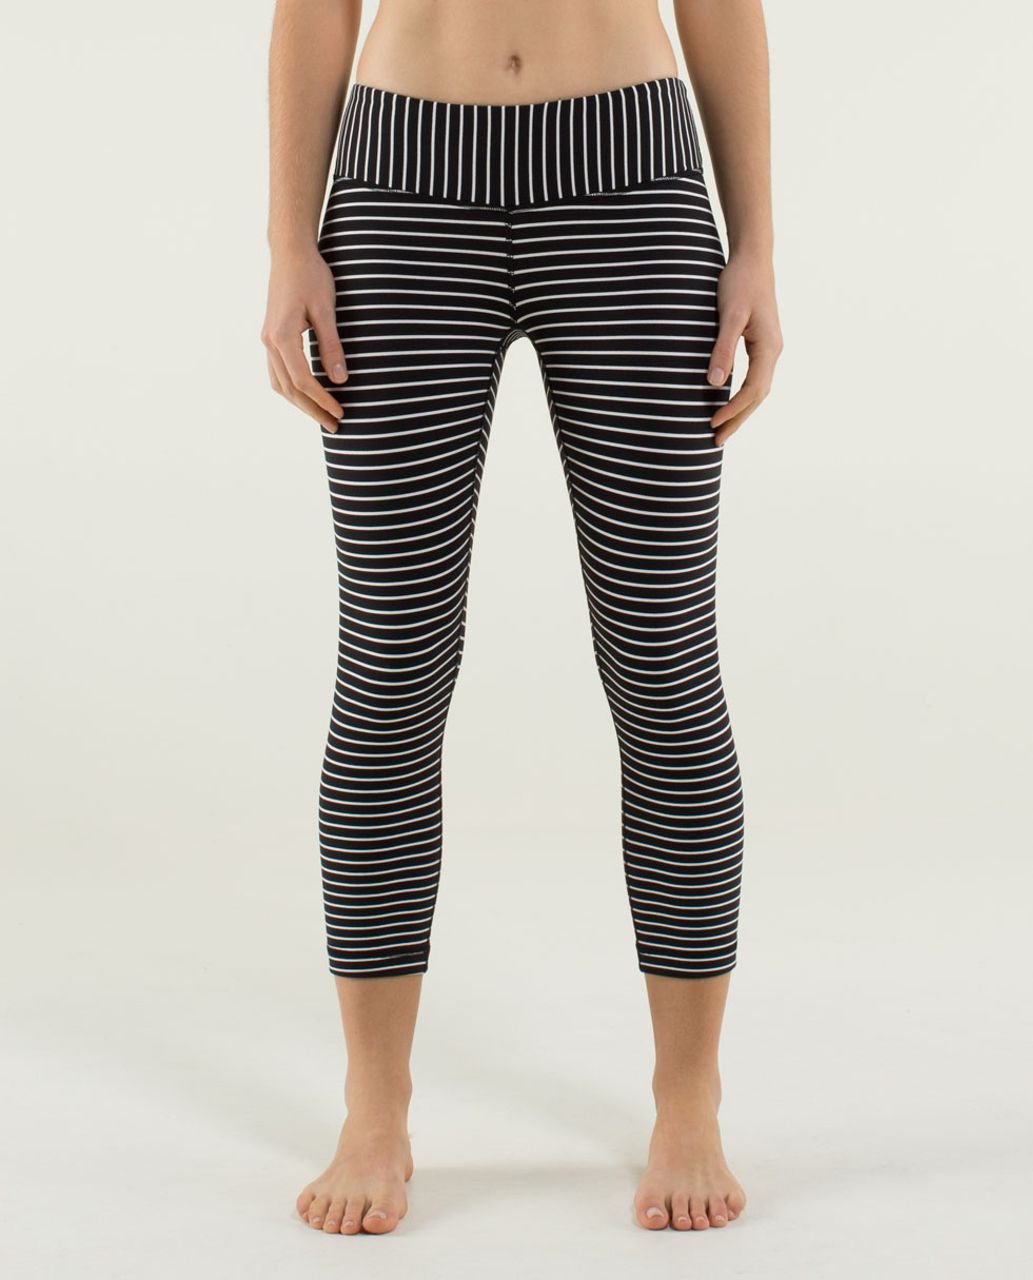 Lululemon Wunder Under Crop - Parallel Stripe